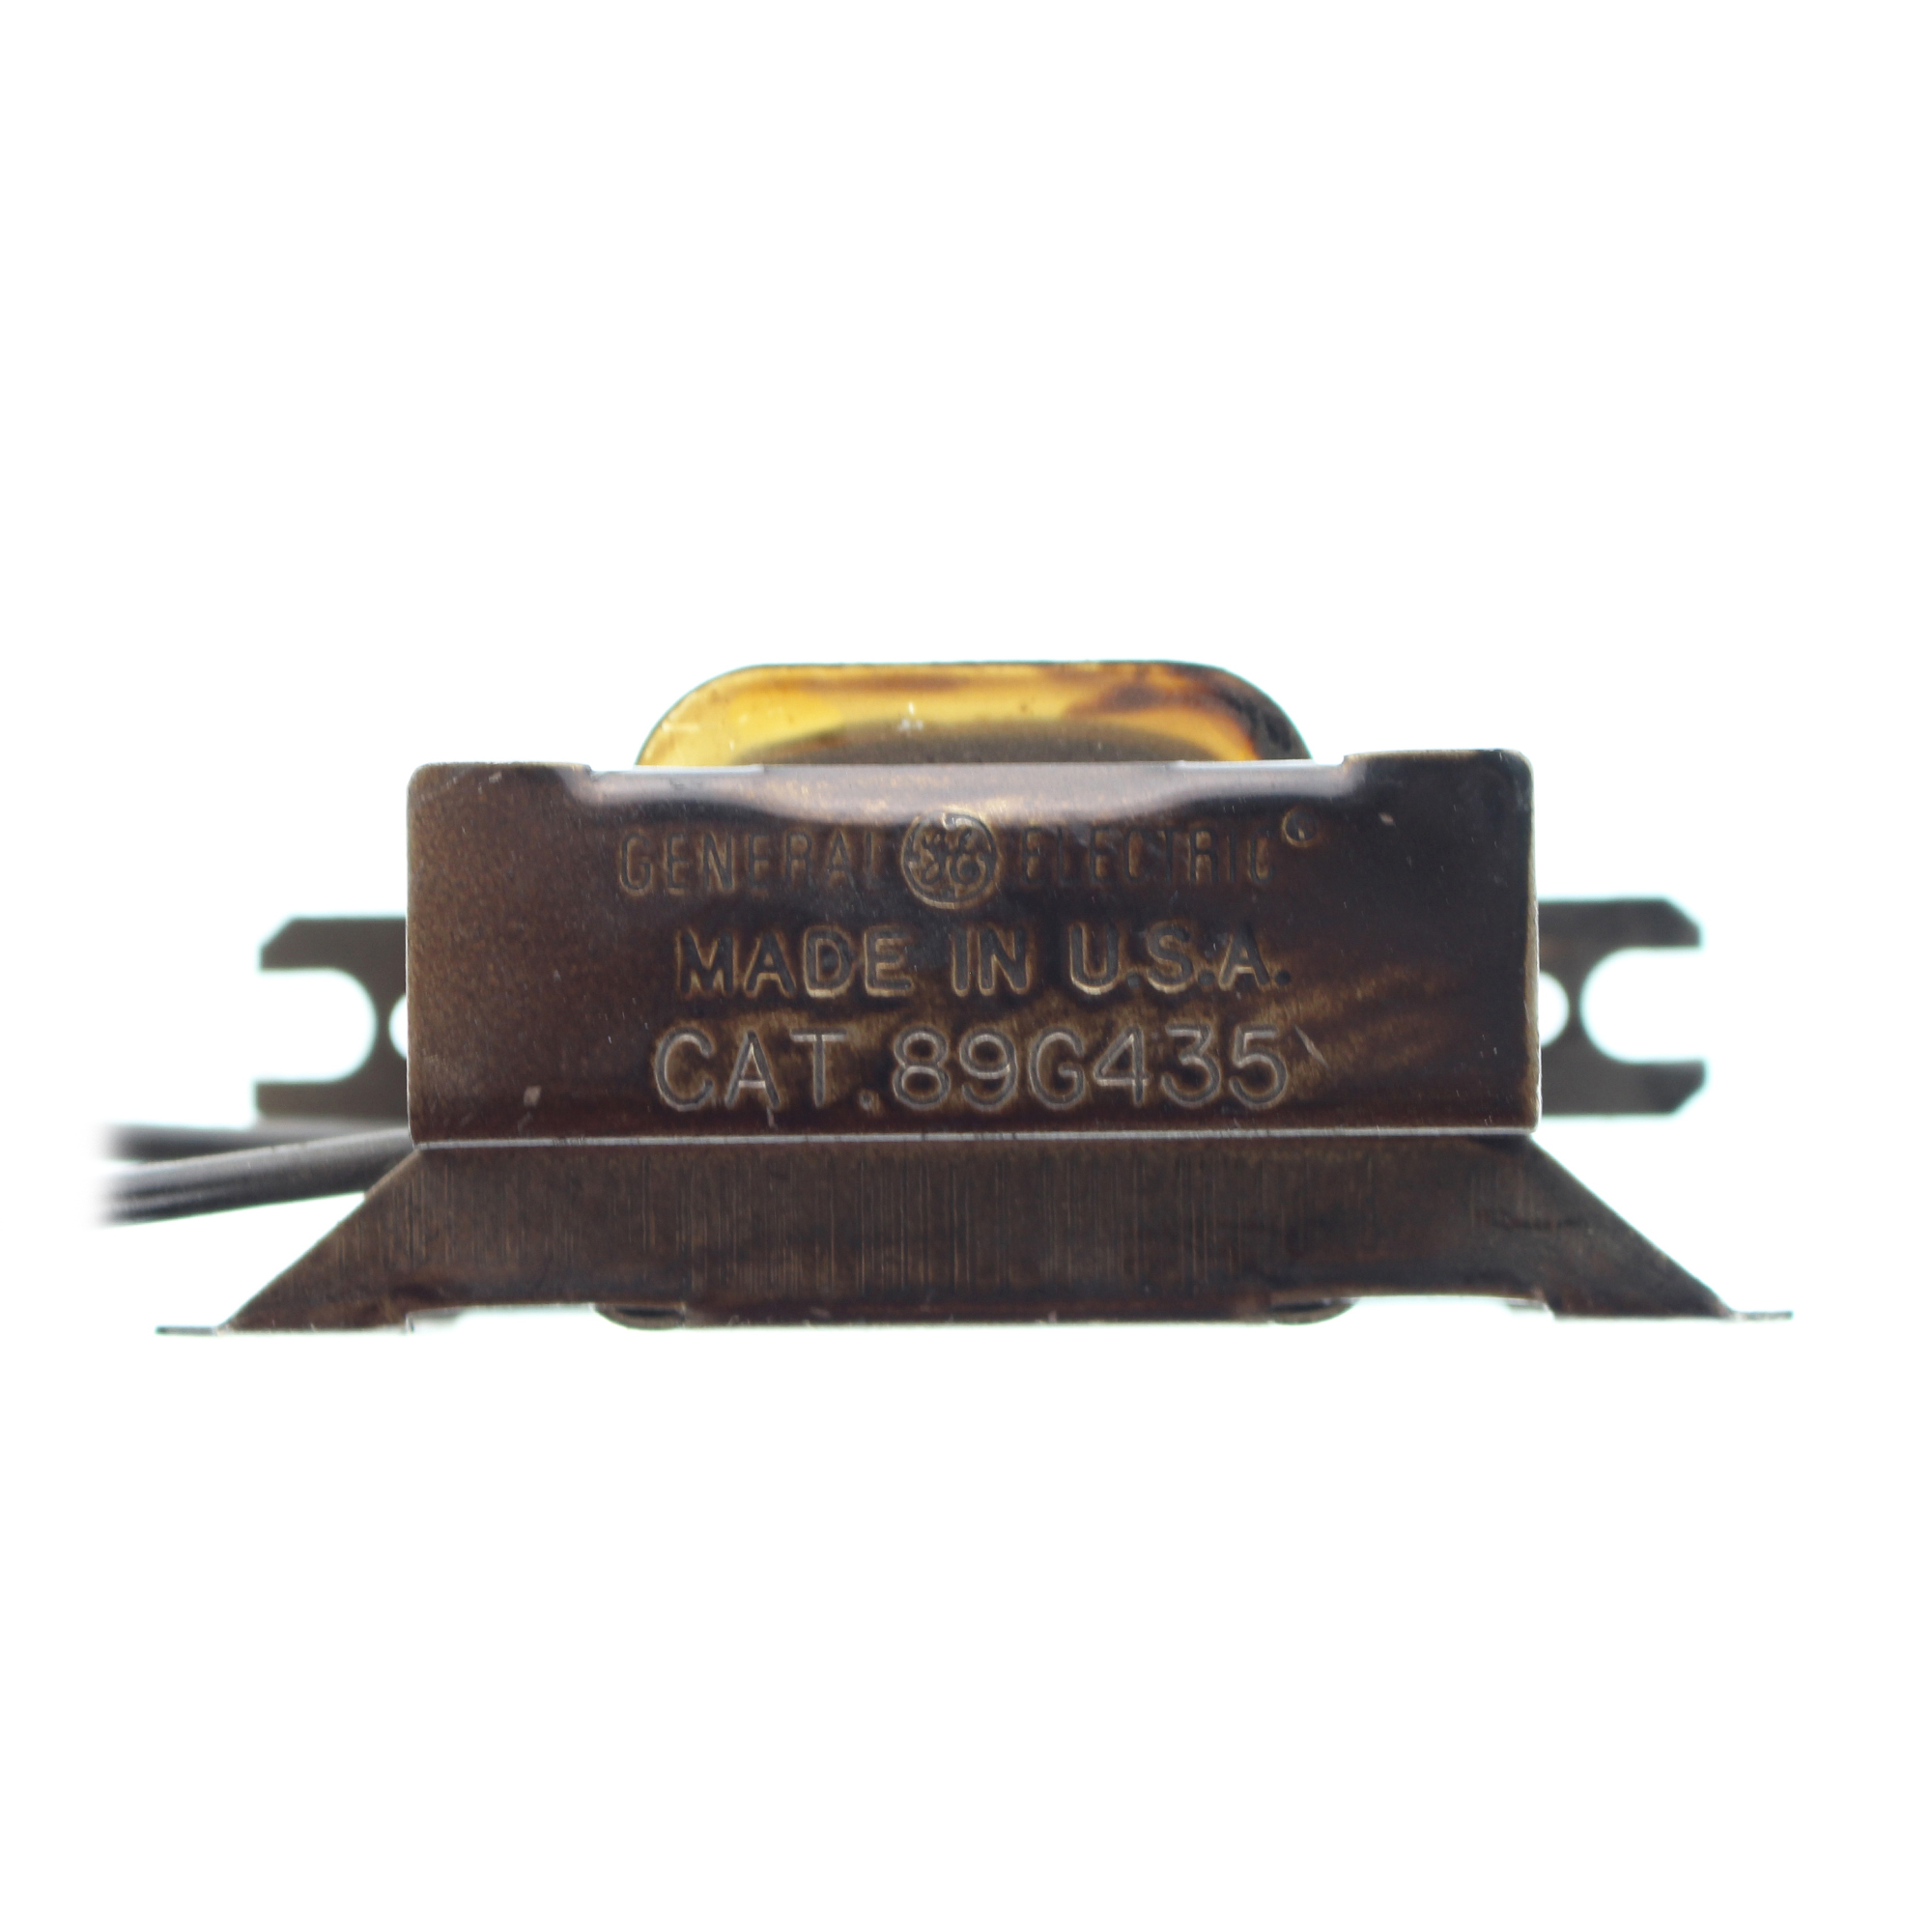 Ge 89g435 Coil Transformer / Ballast Legacy Magnetic 2-wire | eBay